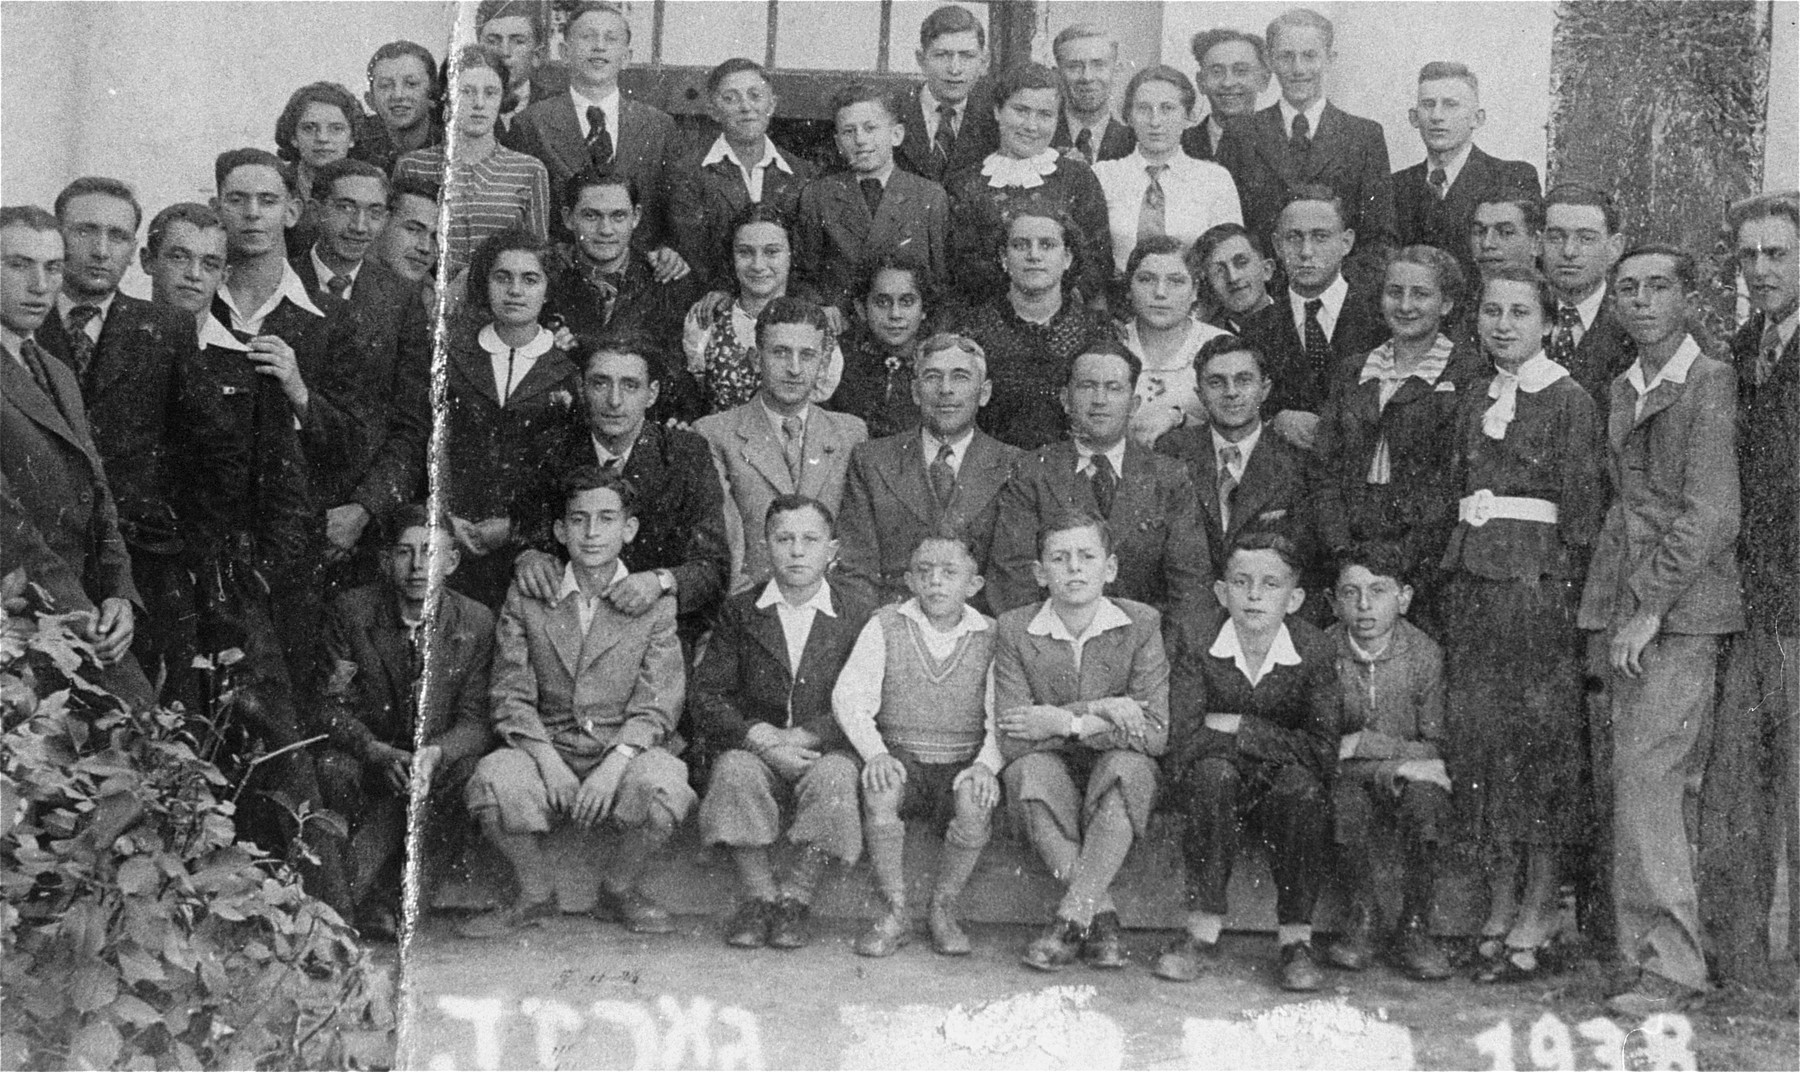 Group portrait of Jewish youth in Gargzdai, Lithuania.